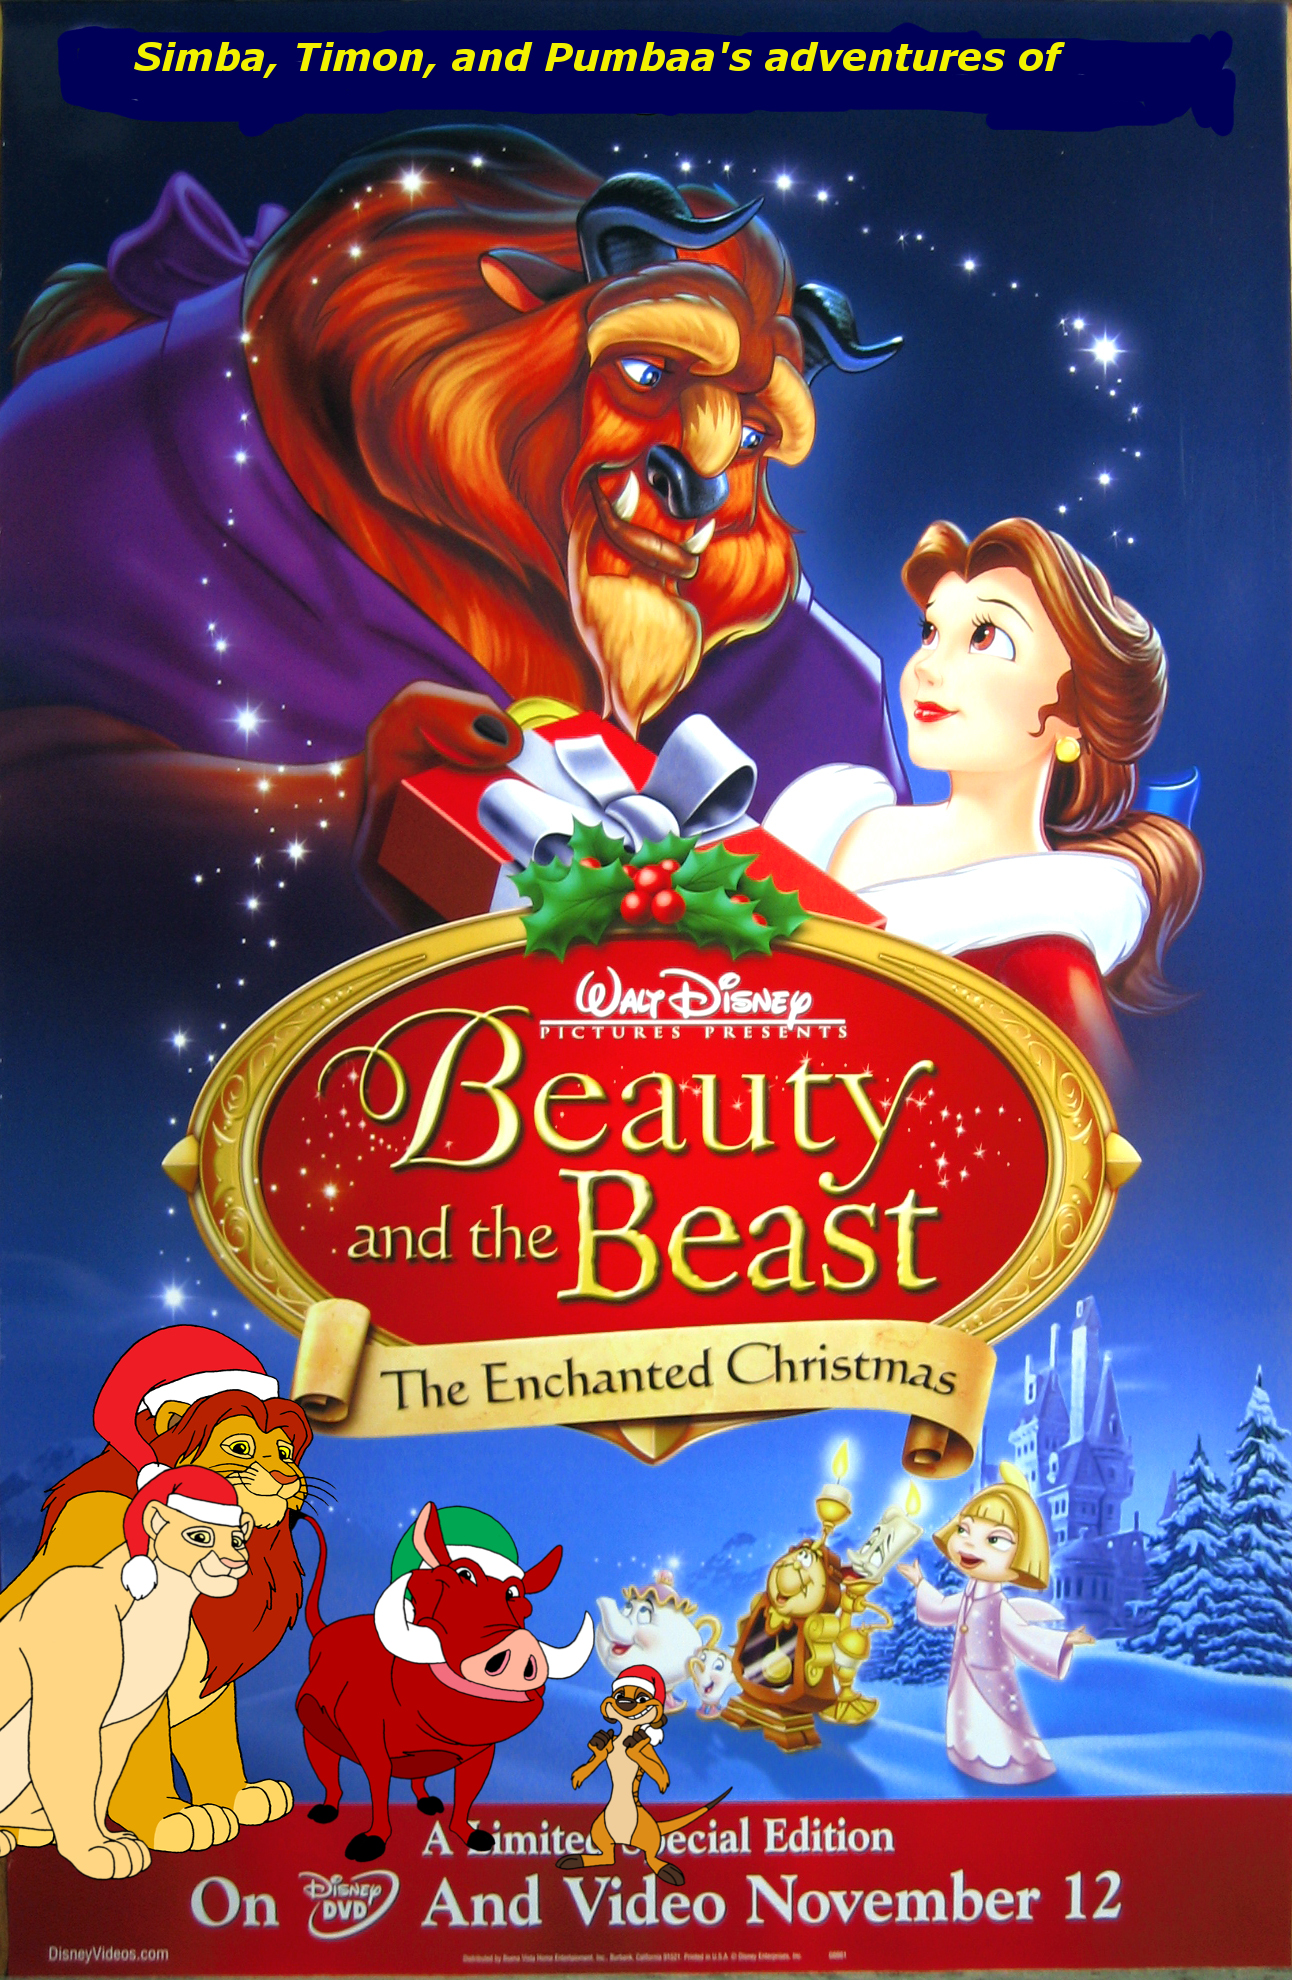 Simba Timon And Pumbaa S Adventures Of Beauty And The